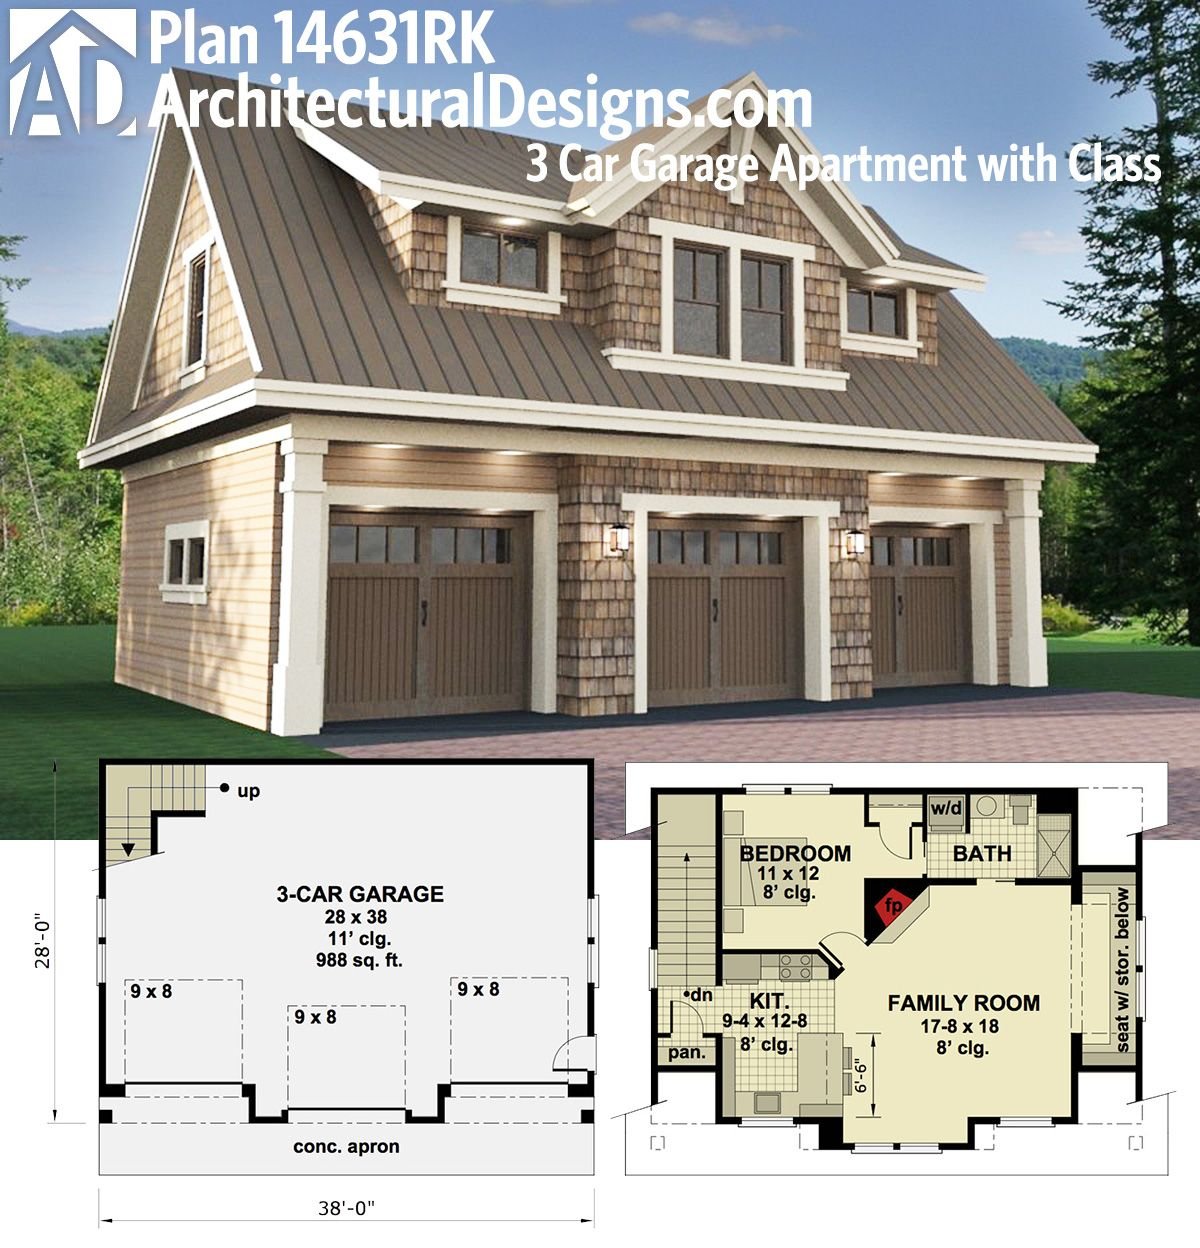 Plan 14631rk 3 car garage apartment with class for 2 car garage floor plans